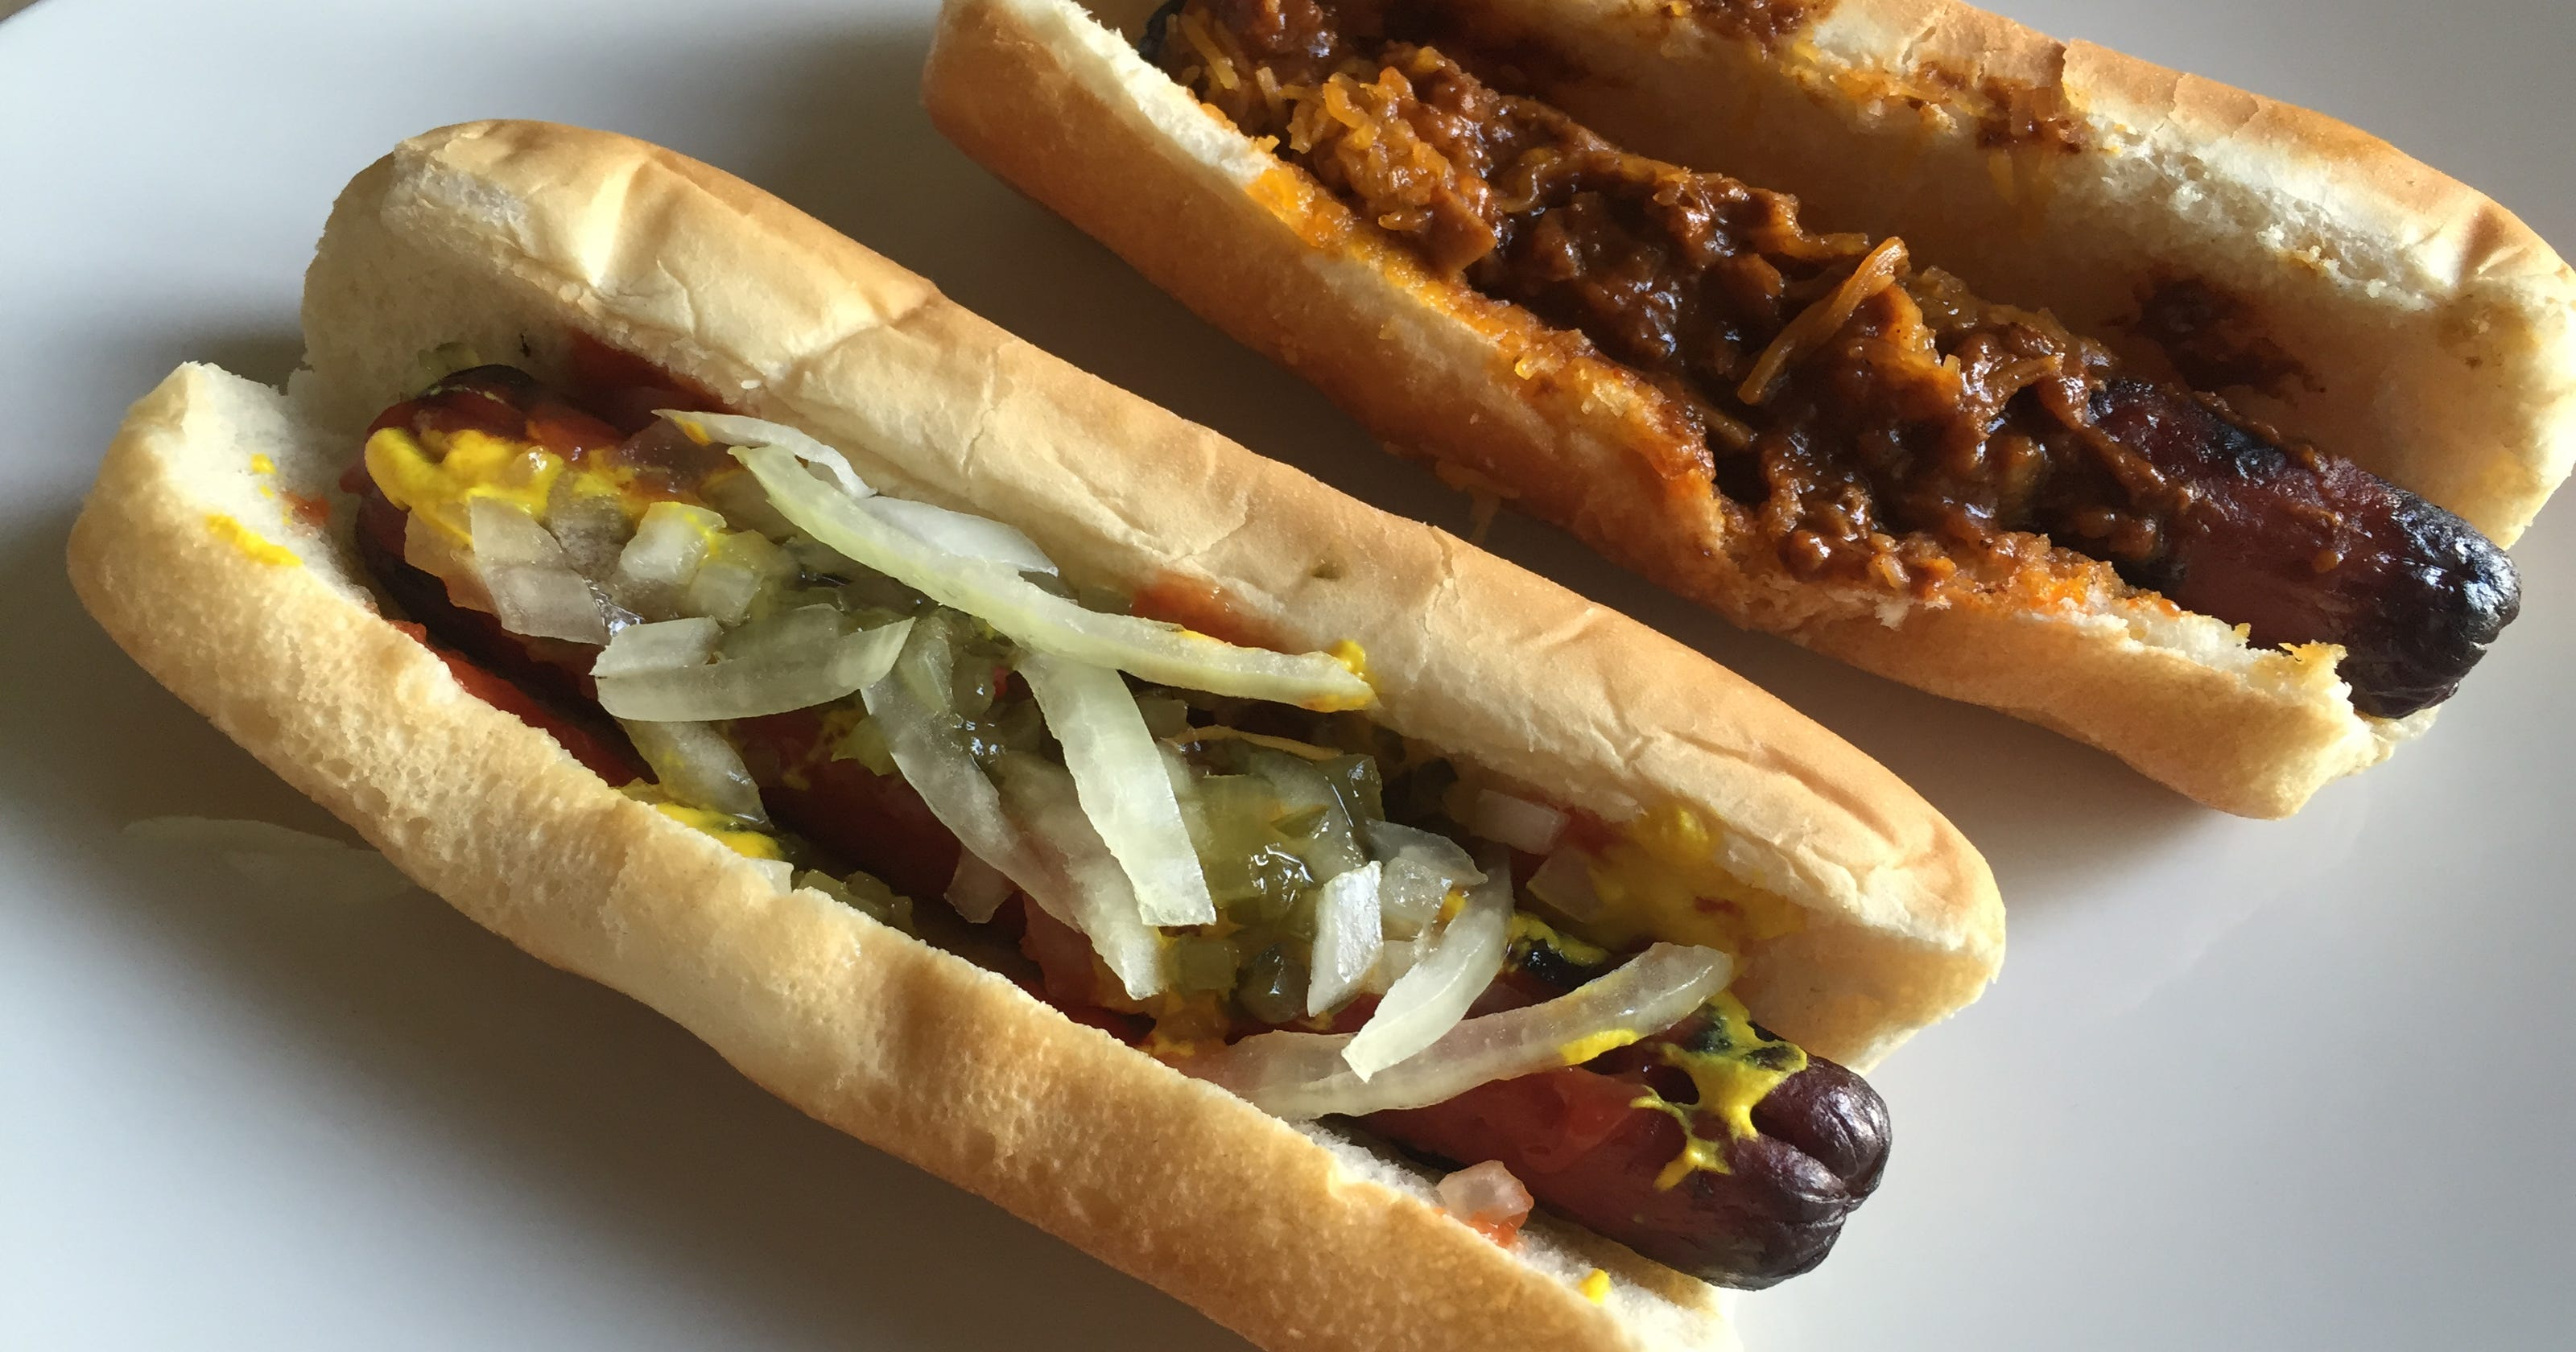 Taste test: The first-ever hot dogs at Burger King